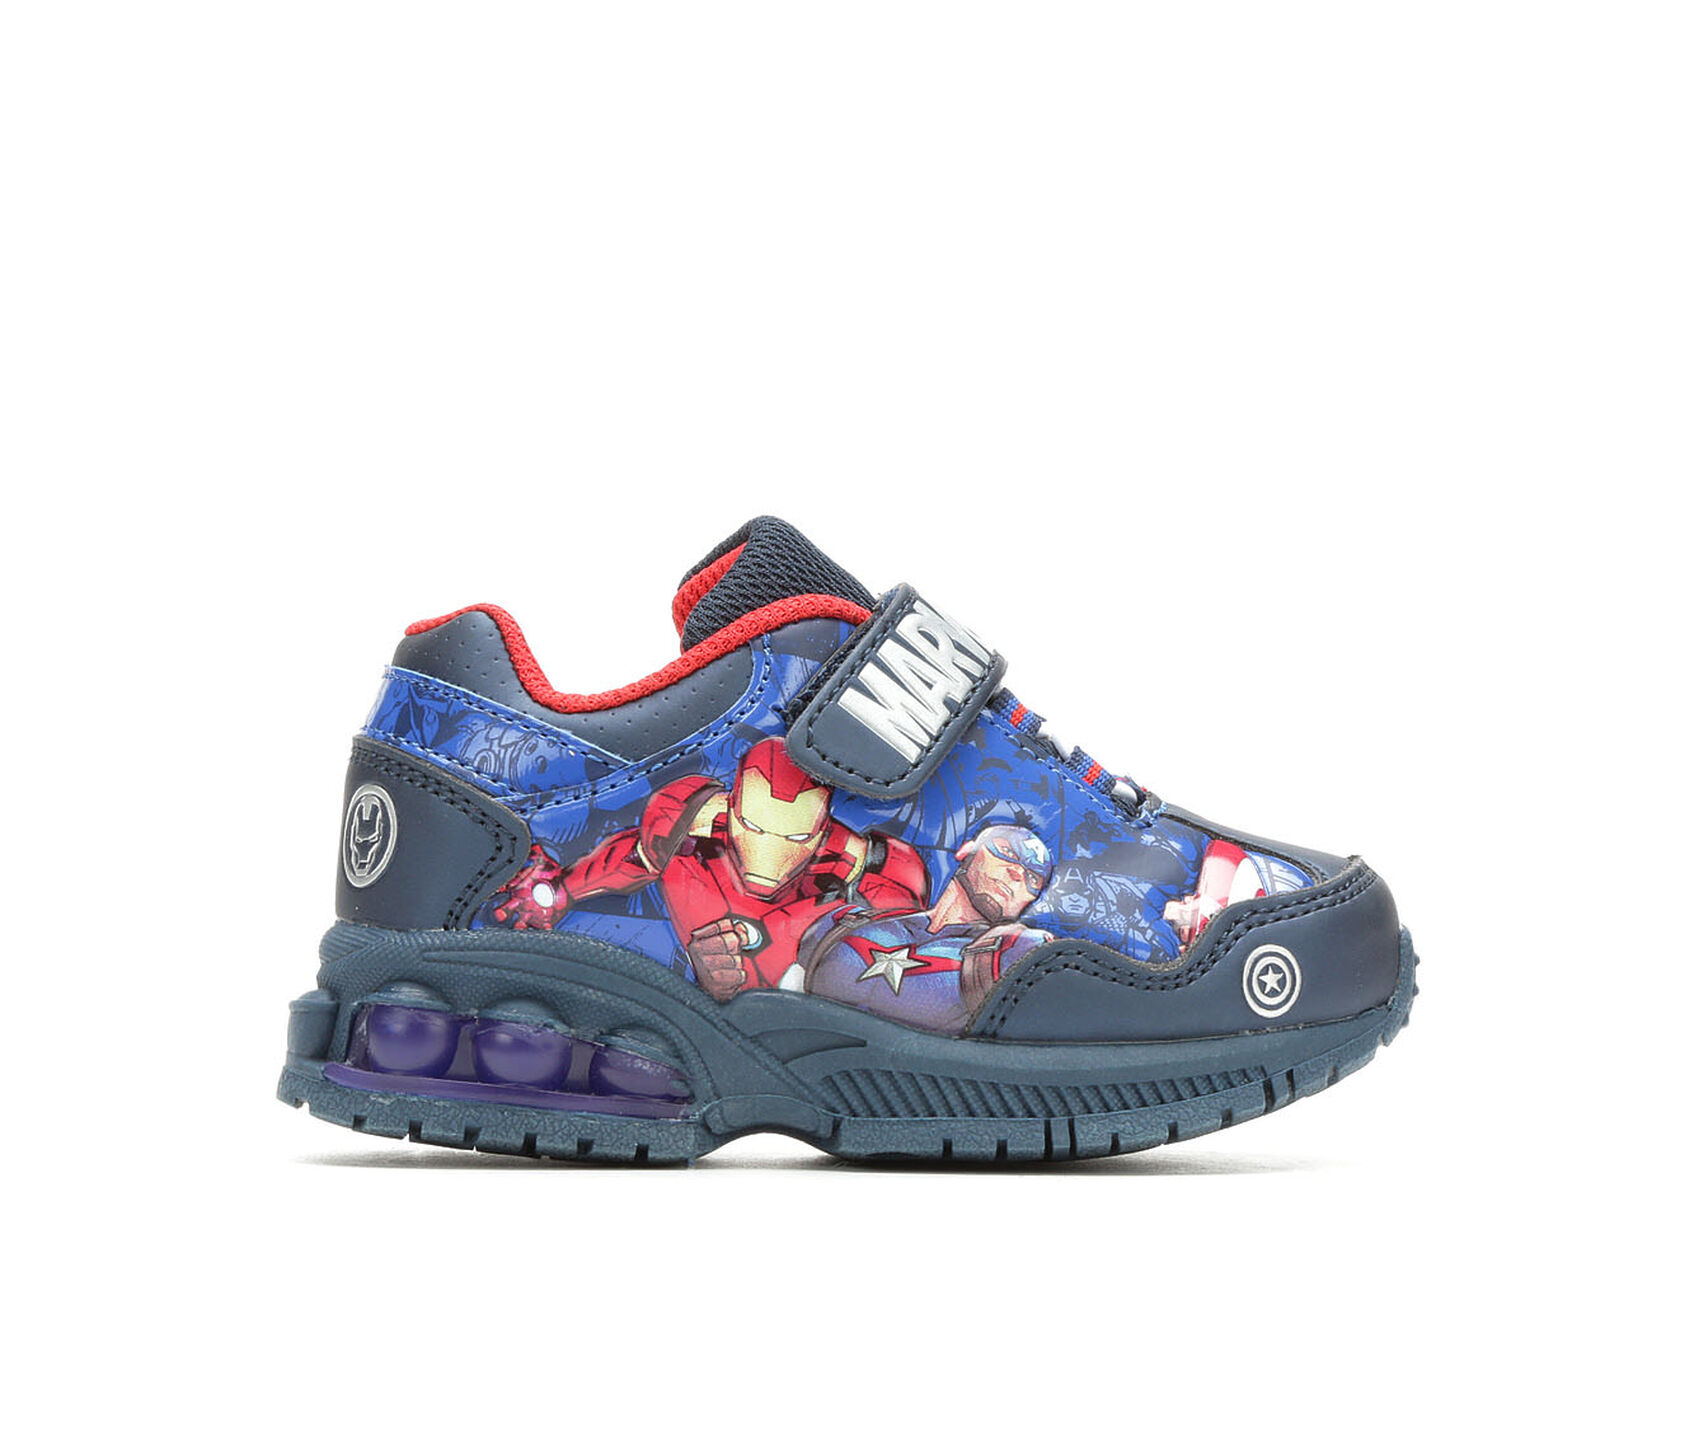 separation shoes 54db5 f5ea5 ... Little Kid Avengers 5 Light-Up Sneakers. Previous